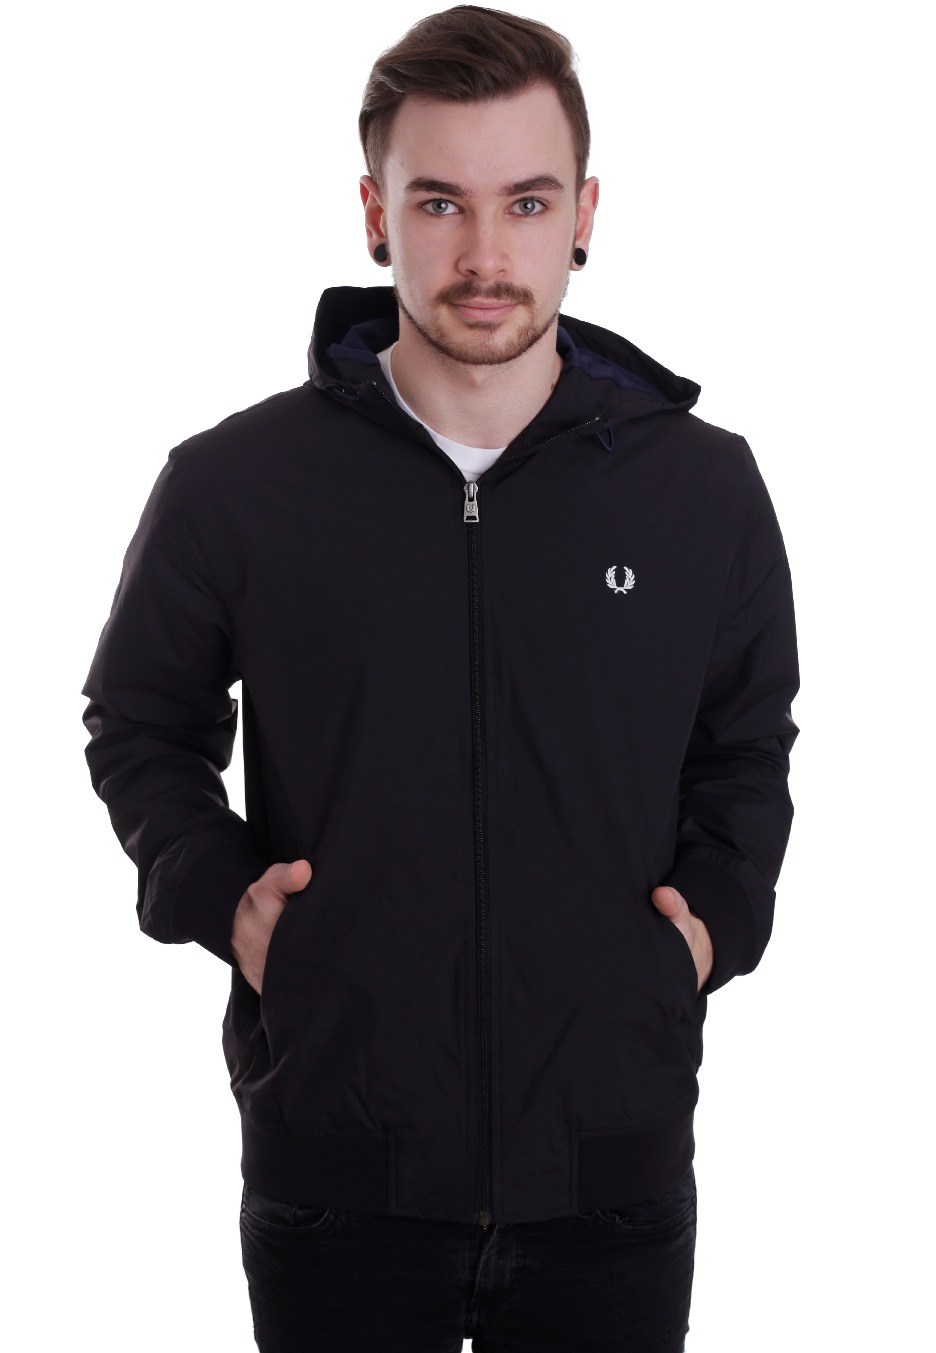 9f039c0ce Fred Perry - Summer Hooded Brentham - Jacket - Streetwear Shop -  Impericon.com Worldwide